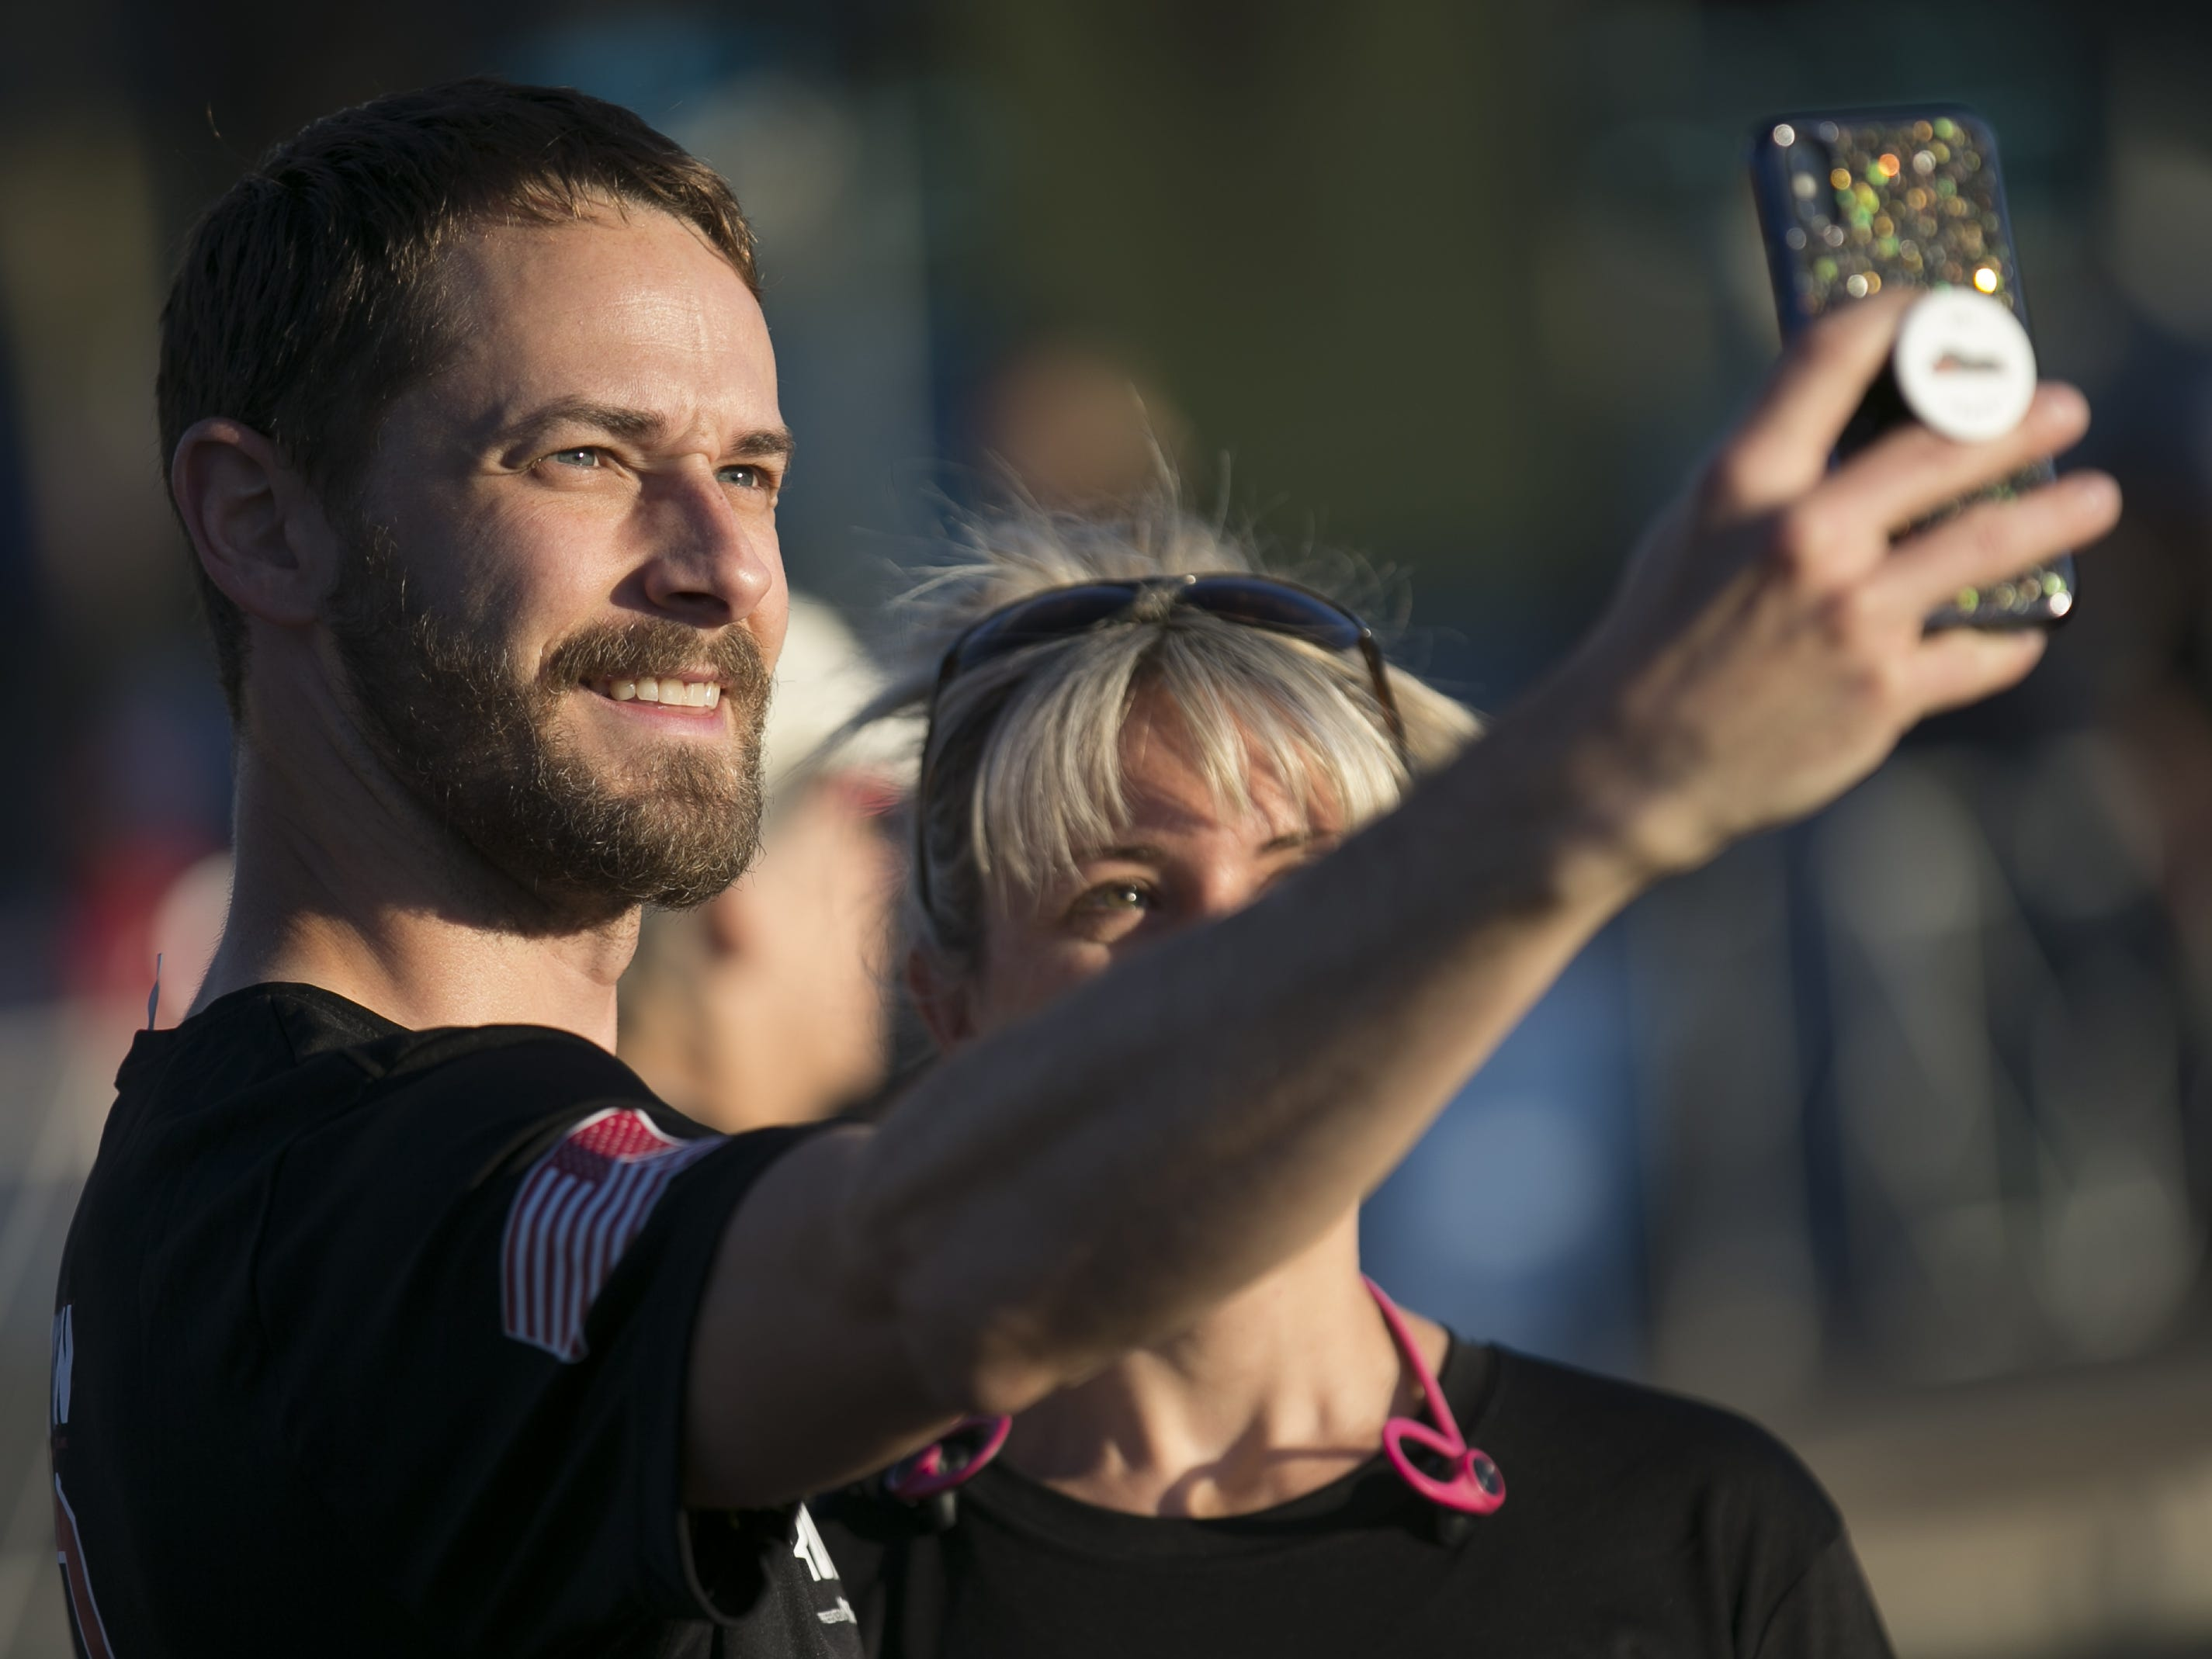 Joel Erickson (left) and Katie Erickson (right) take a selfie at Pat's Run 2019 in Tempe on April 27, 2019.